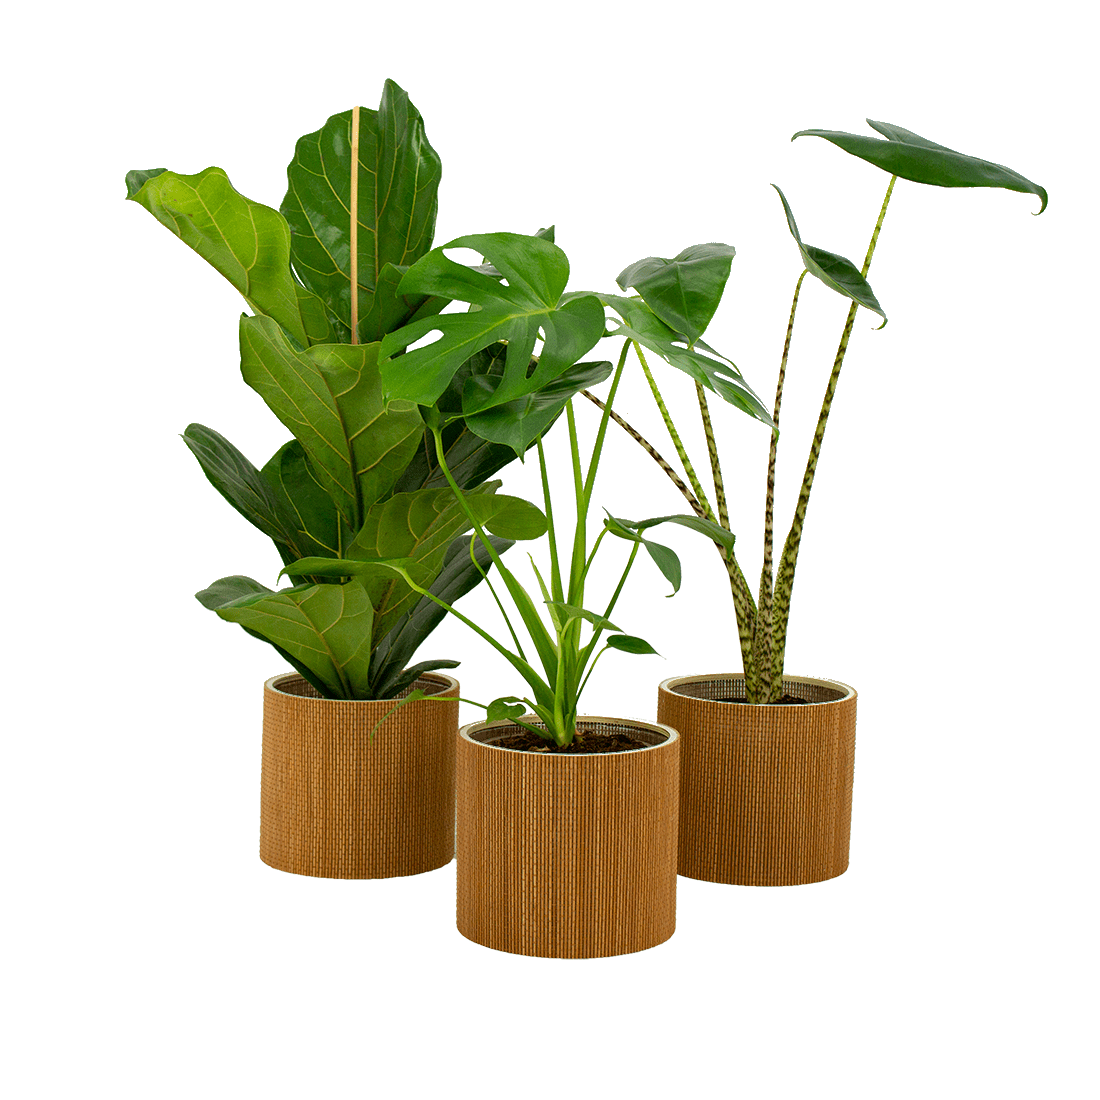 Indoor Plants – 3 × Fiddle-leaf fig in seagrass pot as a set – Height: 72 cm